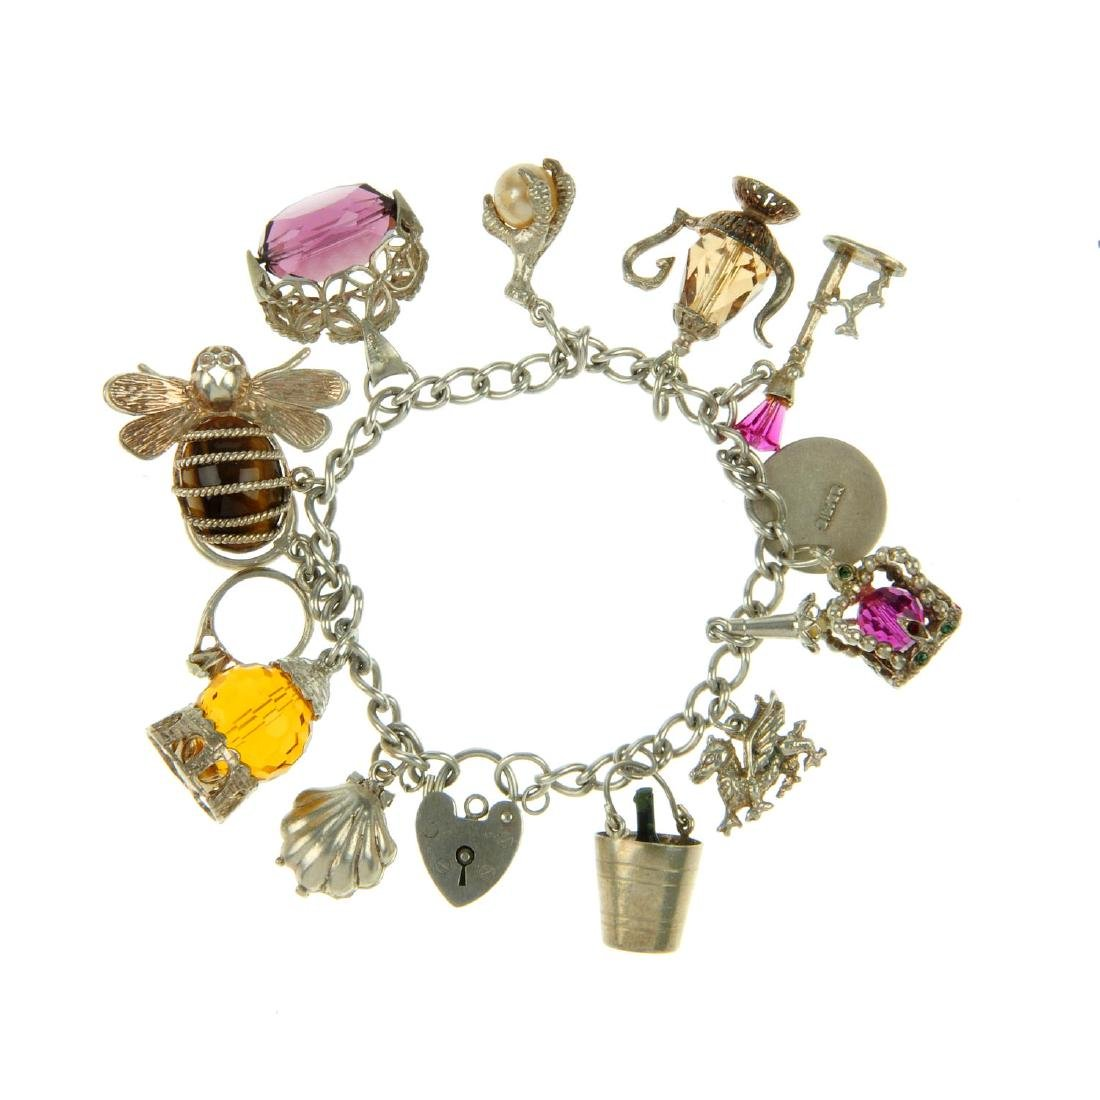 Five charm bracelets. Suspending several charms to